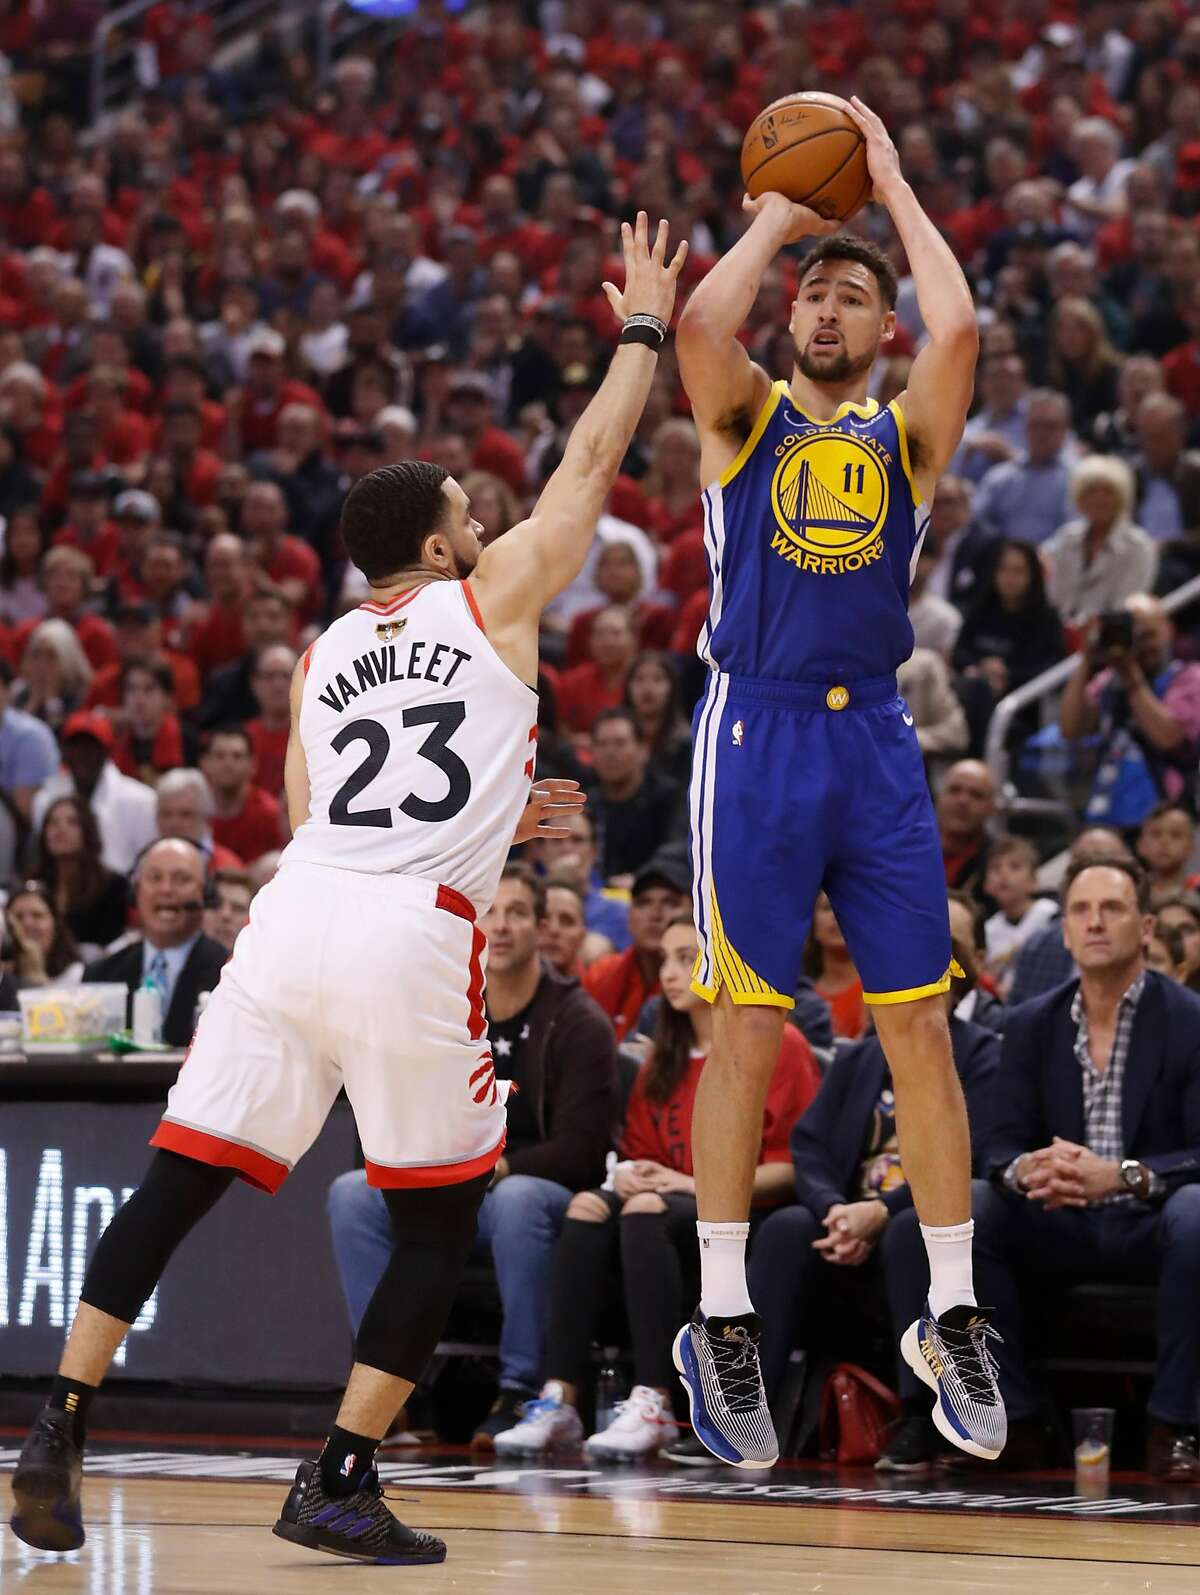 Golden State Warriors' Klay Thompson shoots over Toronto Raptors' Fred VanVleet in the first quarter during game 2 of the NBA Finals between the Golden State Warriors and the Toronto Raptors at Scotiabank Arena on Sunday, June 2, 2019 in Toronto, Ontario, Canada.